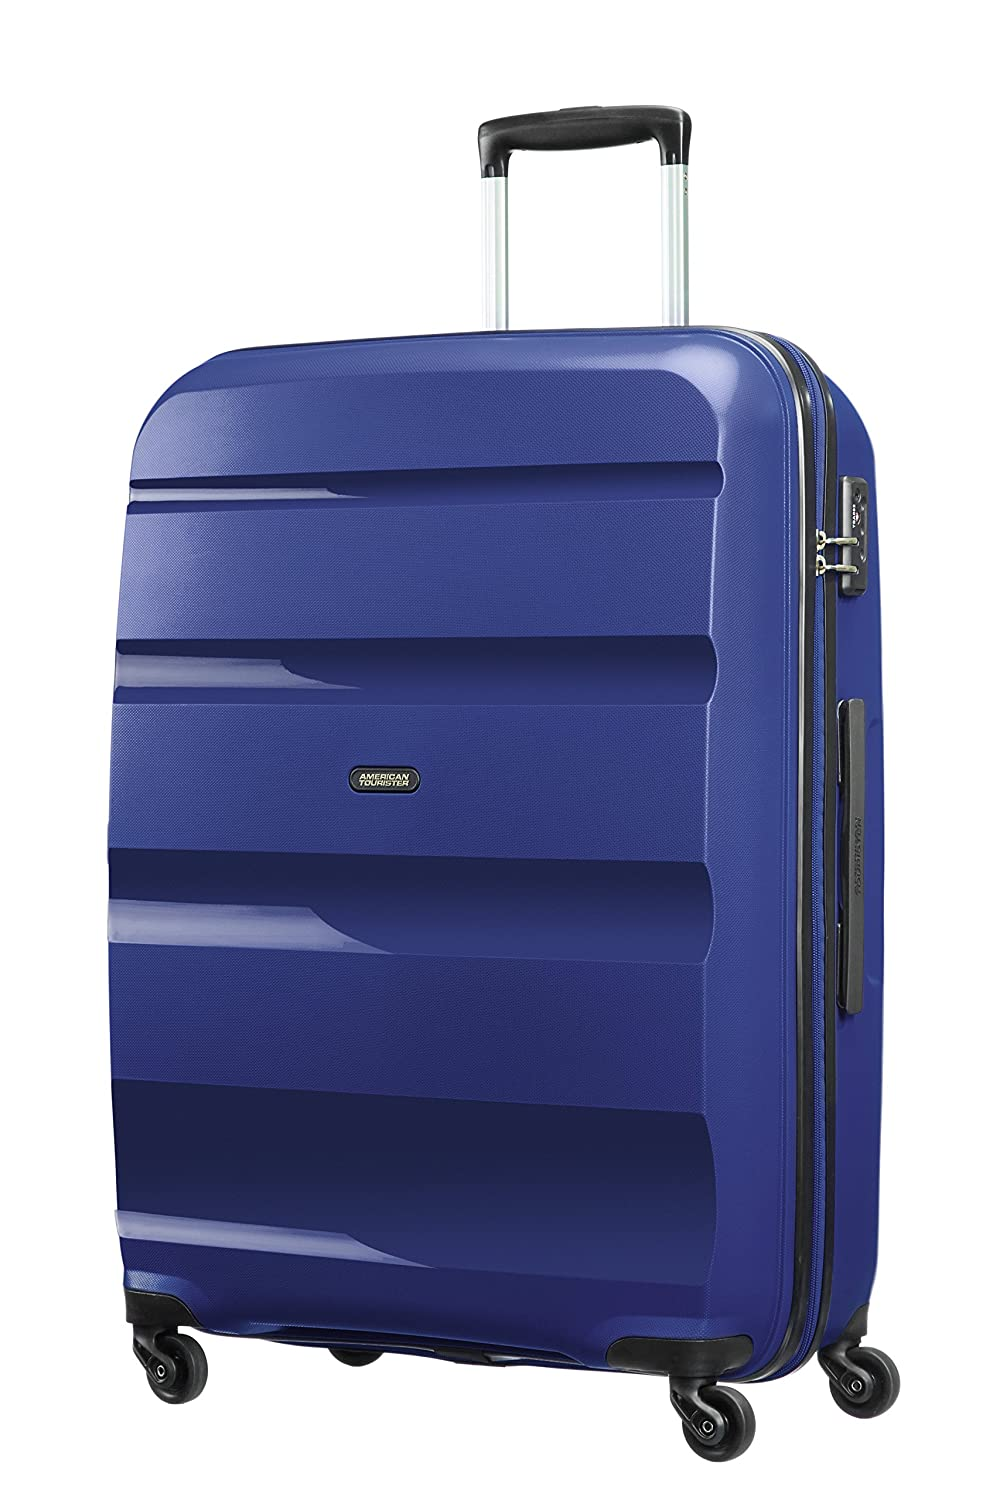 American Tourister - Bon Air - Spinner Maleta 75 cm, 91 L, Azul (Midnight Navy)